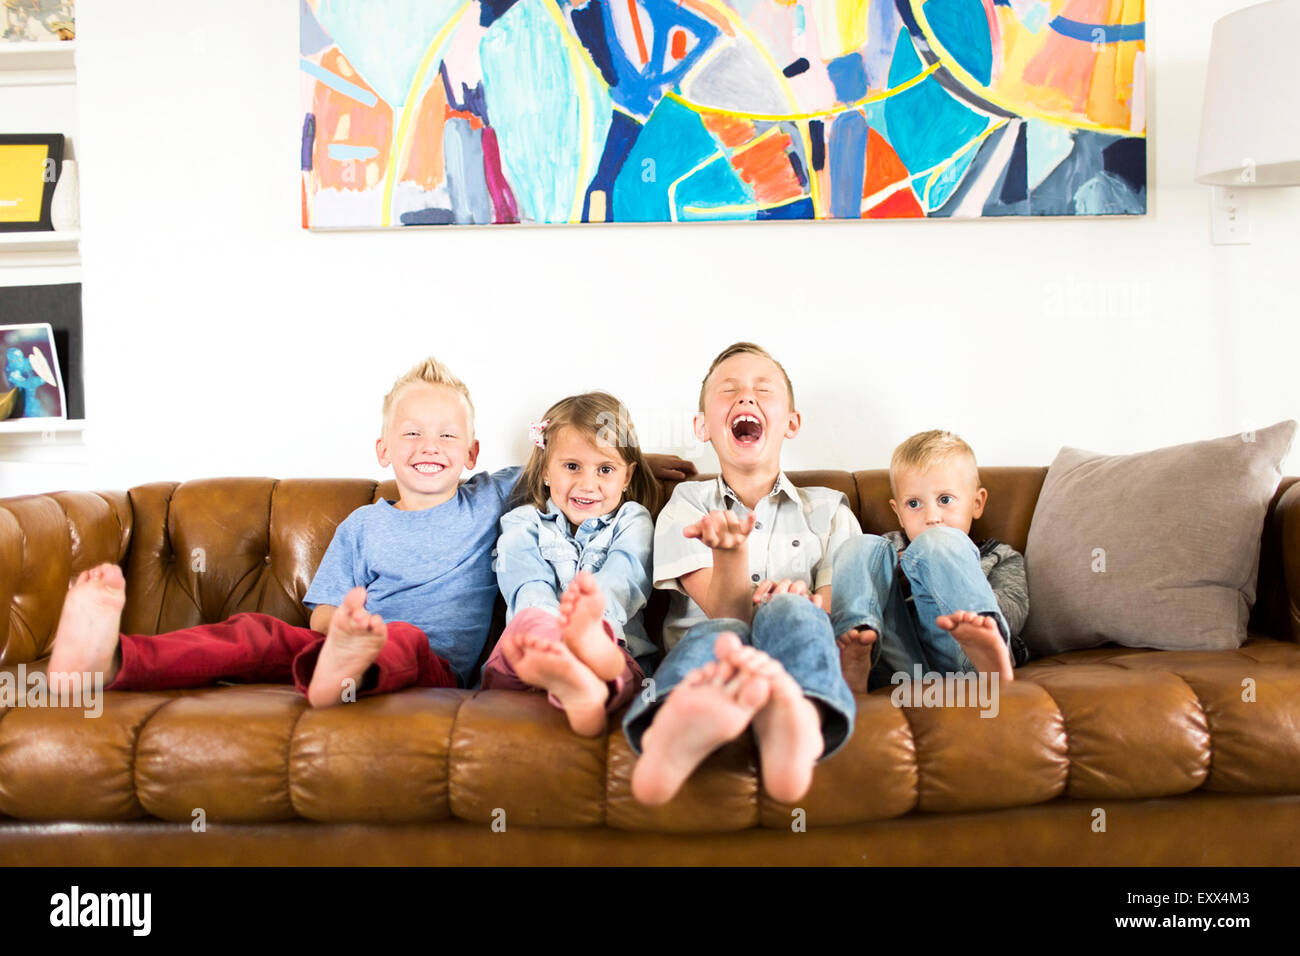 Smiling children (2-3, 4-5, 6-7) sitting on sofa - Stock Image